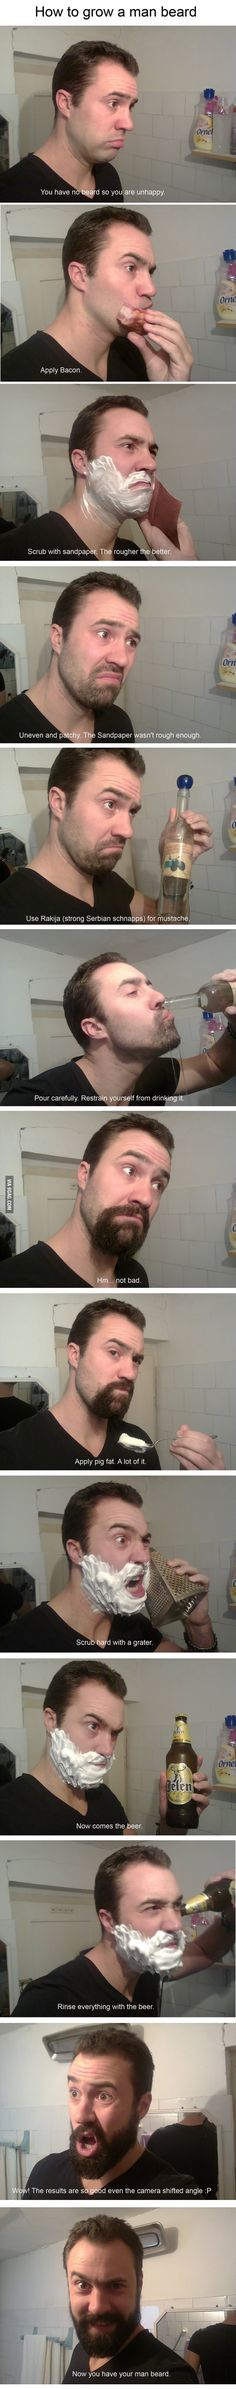 How to faster grow mans beard